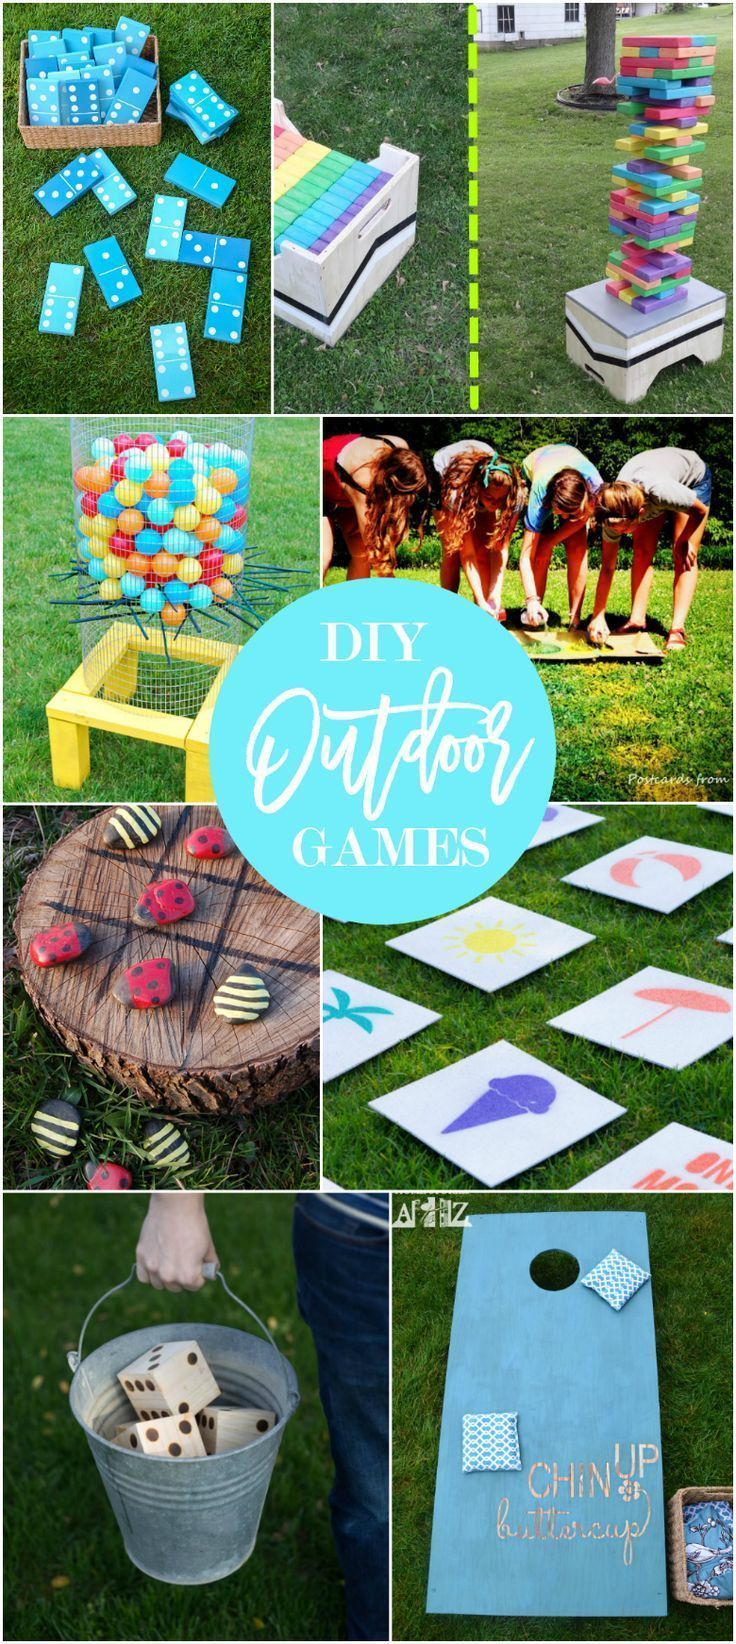 Genial 17 DIY Games For Outdoor Family Fun   Home Stories A To Z